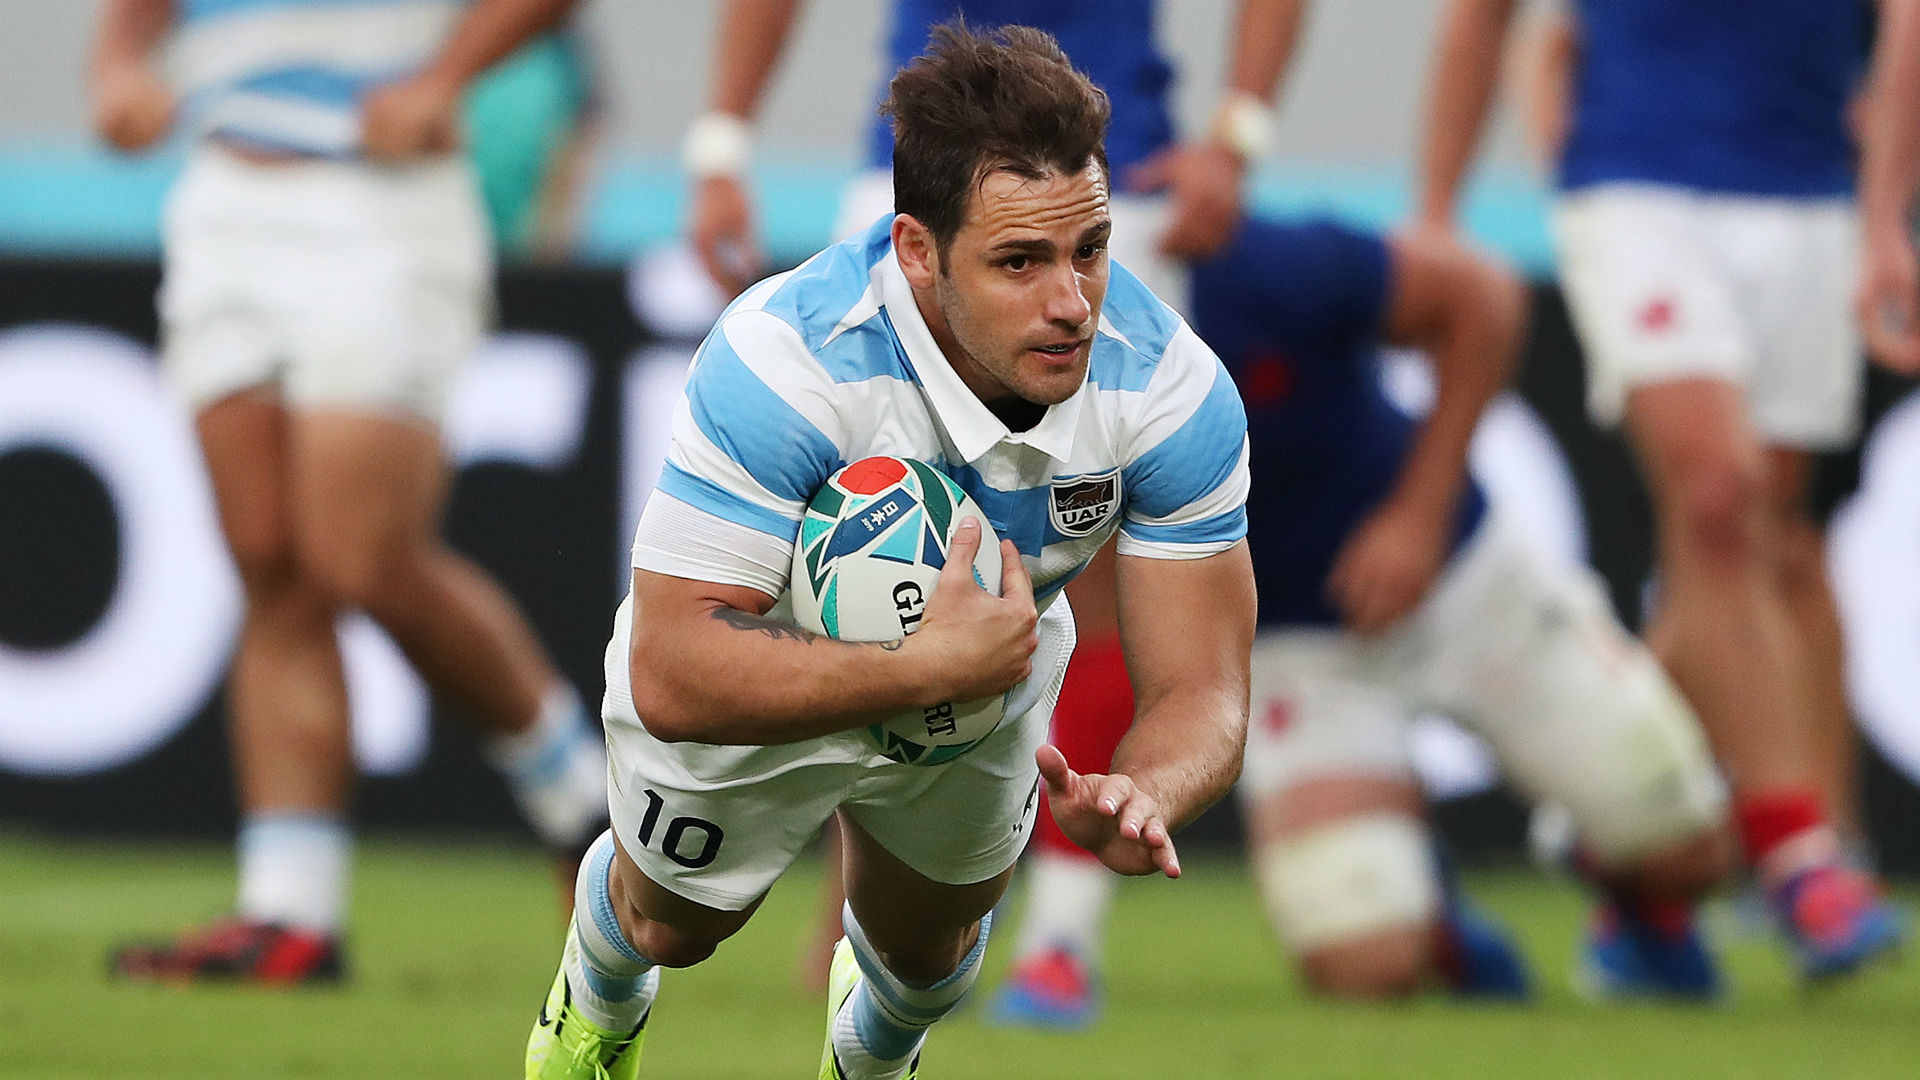 Rugby World Cup 2019: Pumas omit Sanchez for crunch England clash